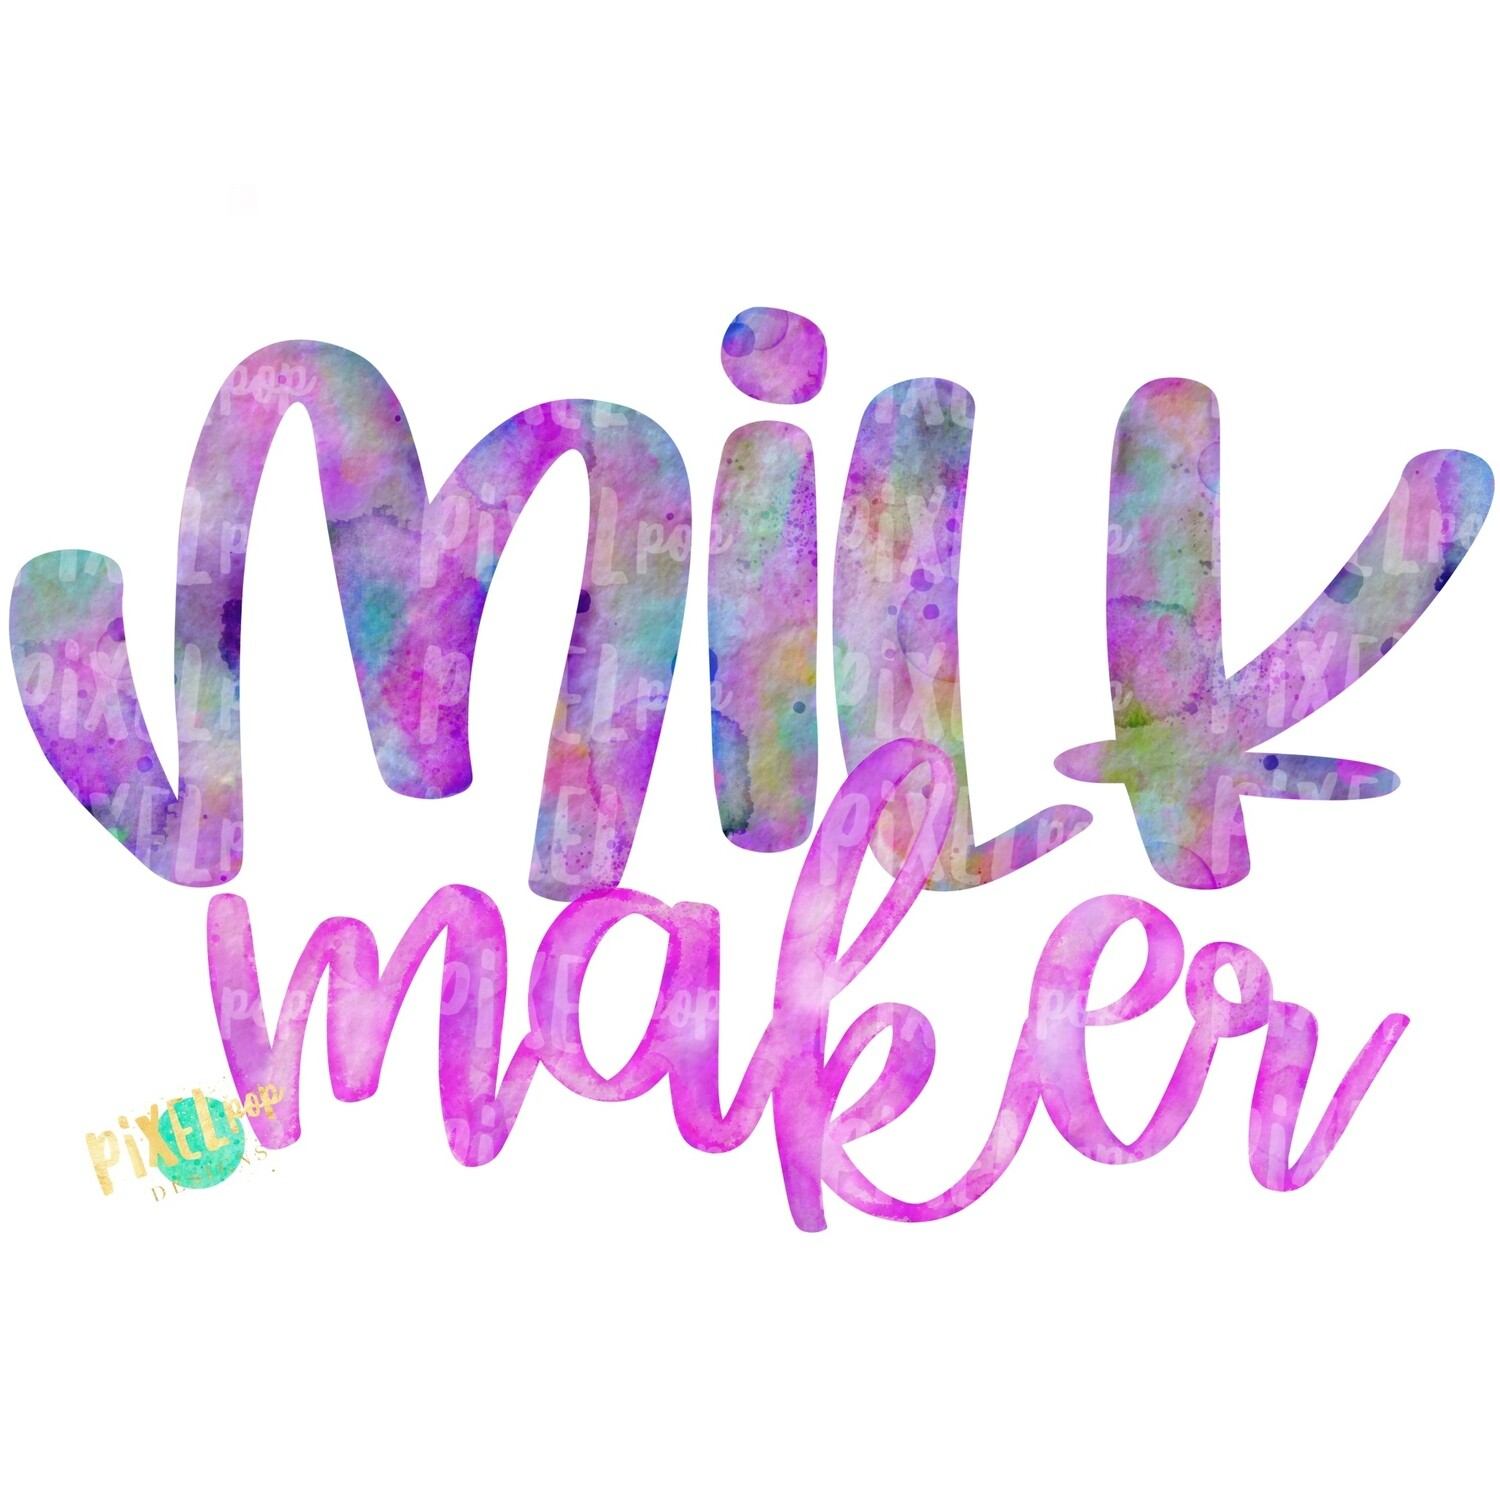 Milk Maker Pink Breastfeeding PNG | Breastfeeding Design | Sublimation Design | Hand Painted Watercolor PNG | Digital Download | Mother's Day